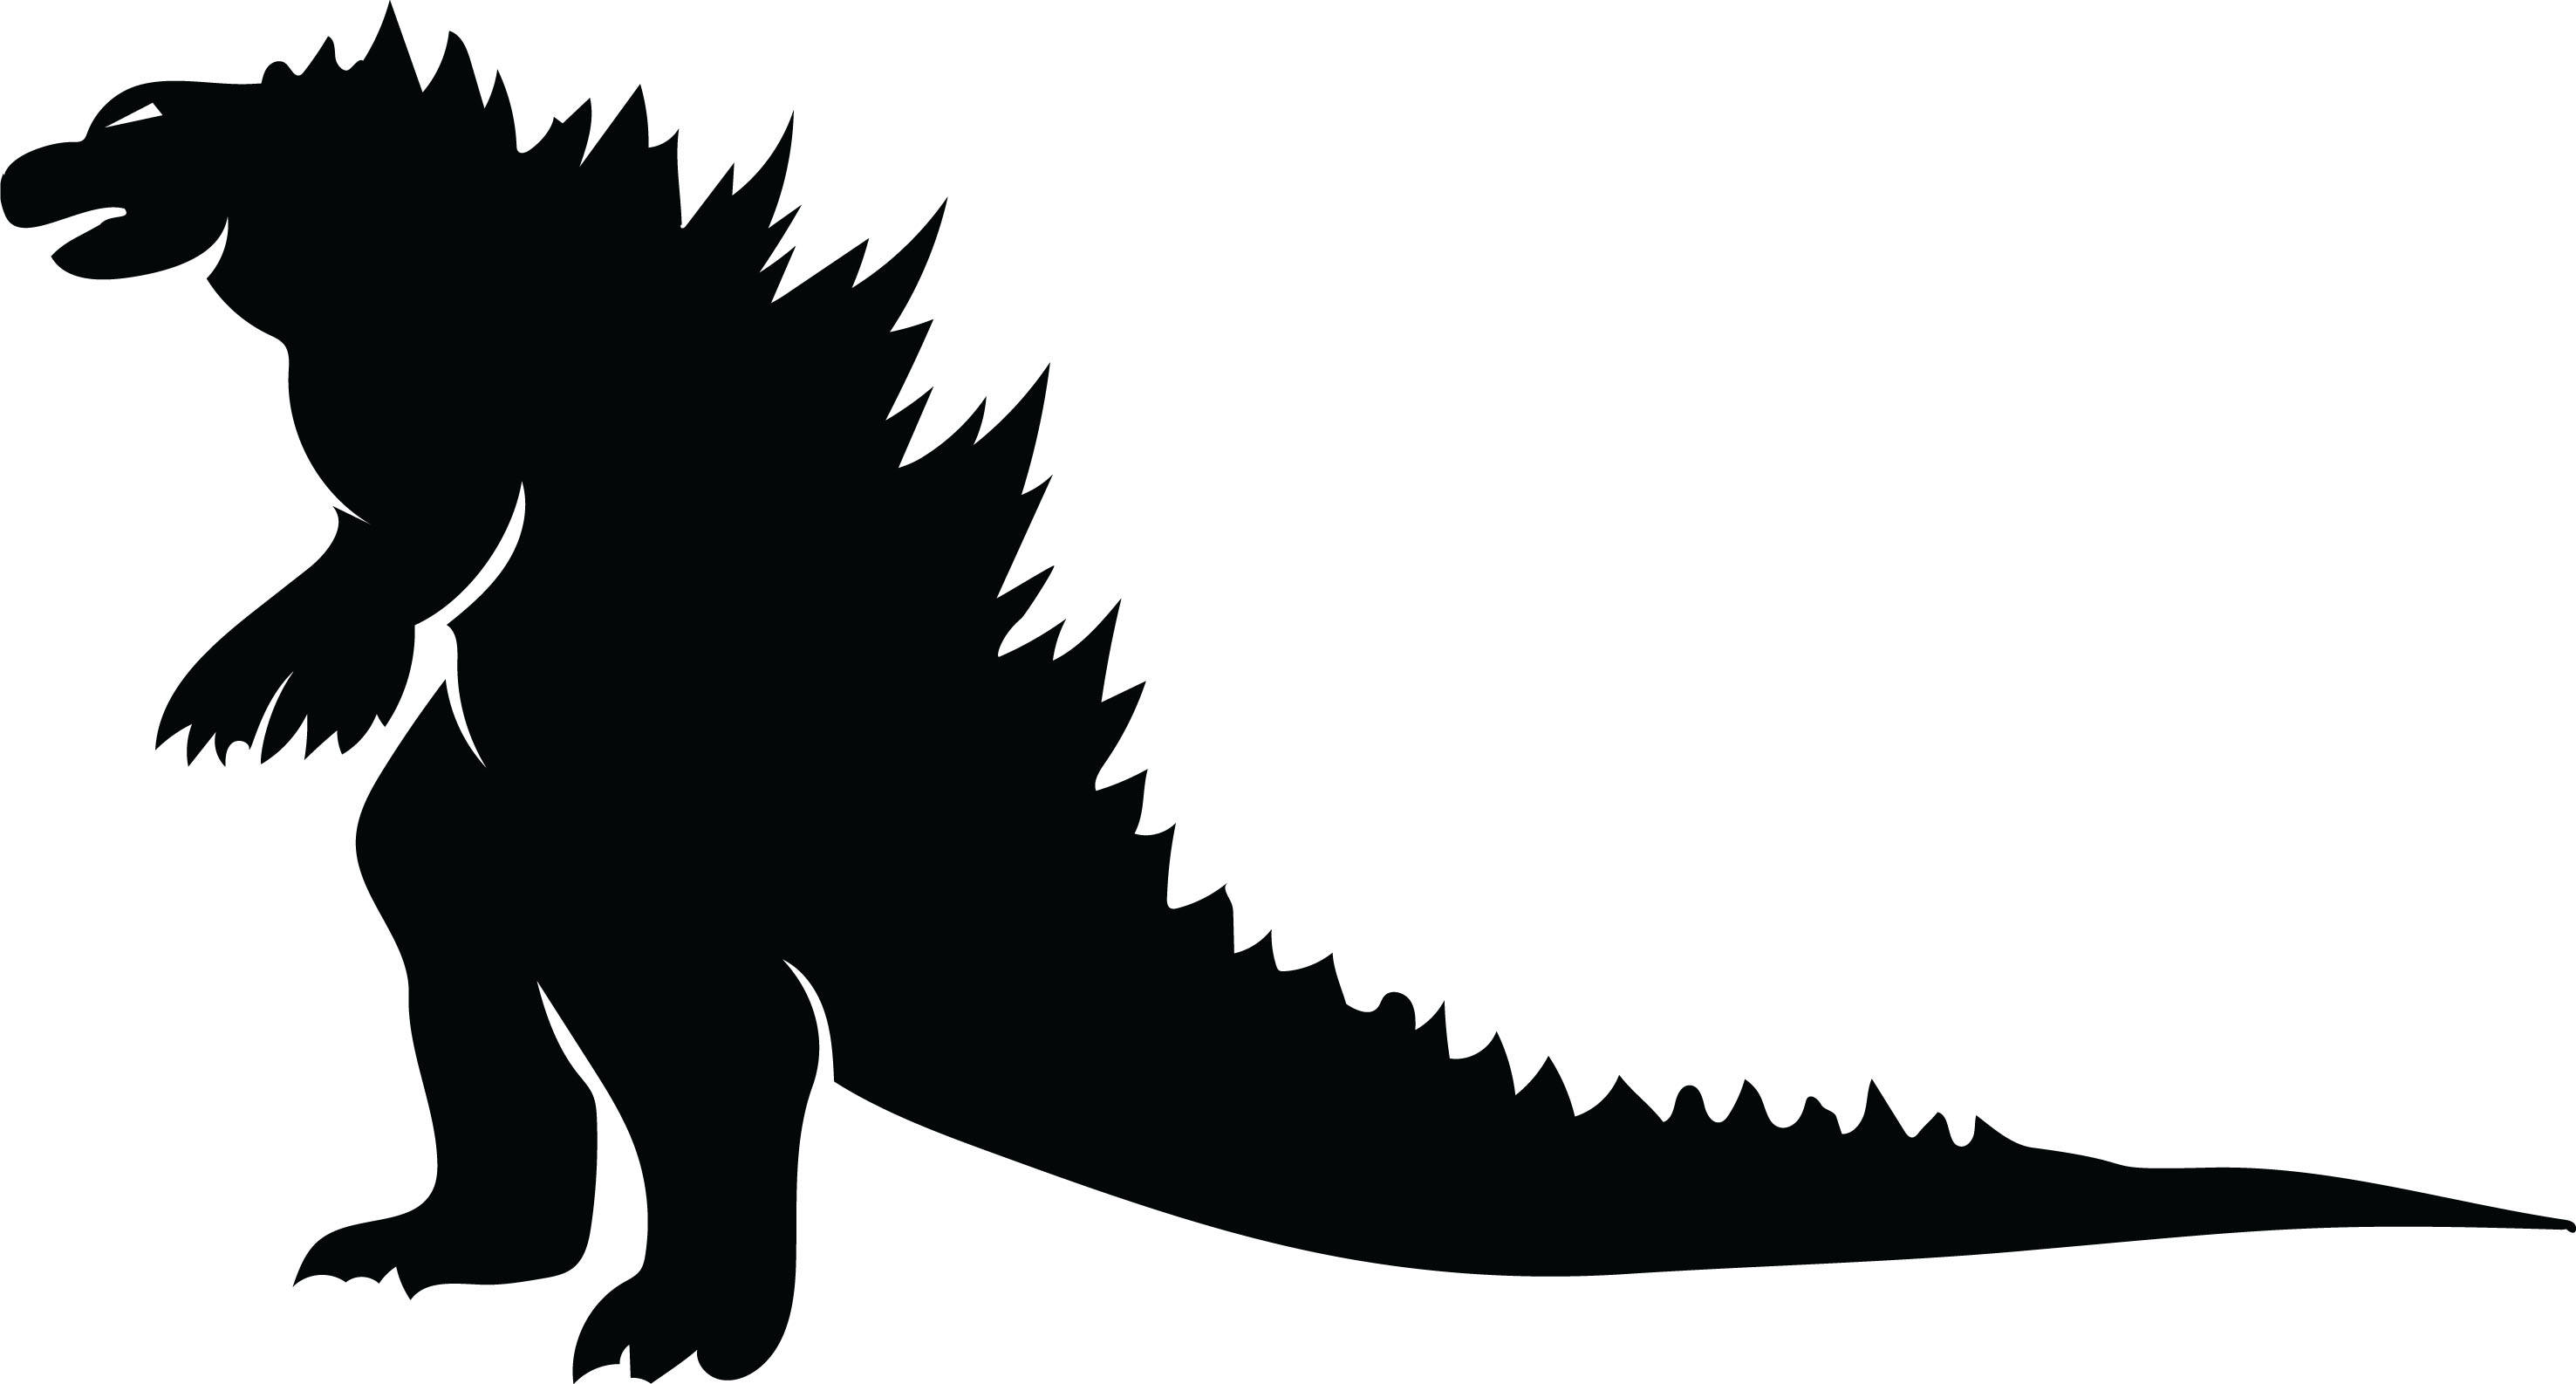 godzilla silhouette at getdrawings com free for personal use rh getdrawings com godzilla clip art free All Godzilla Clip Art